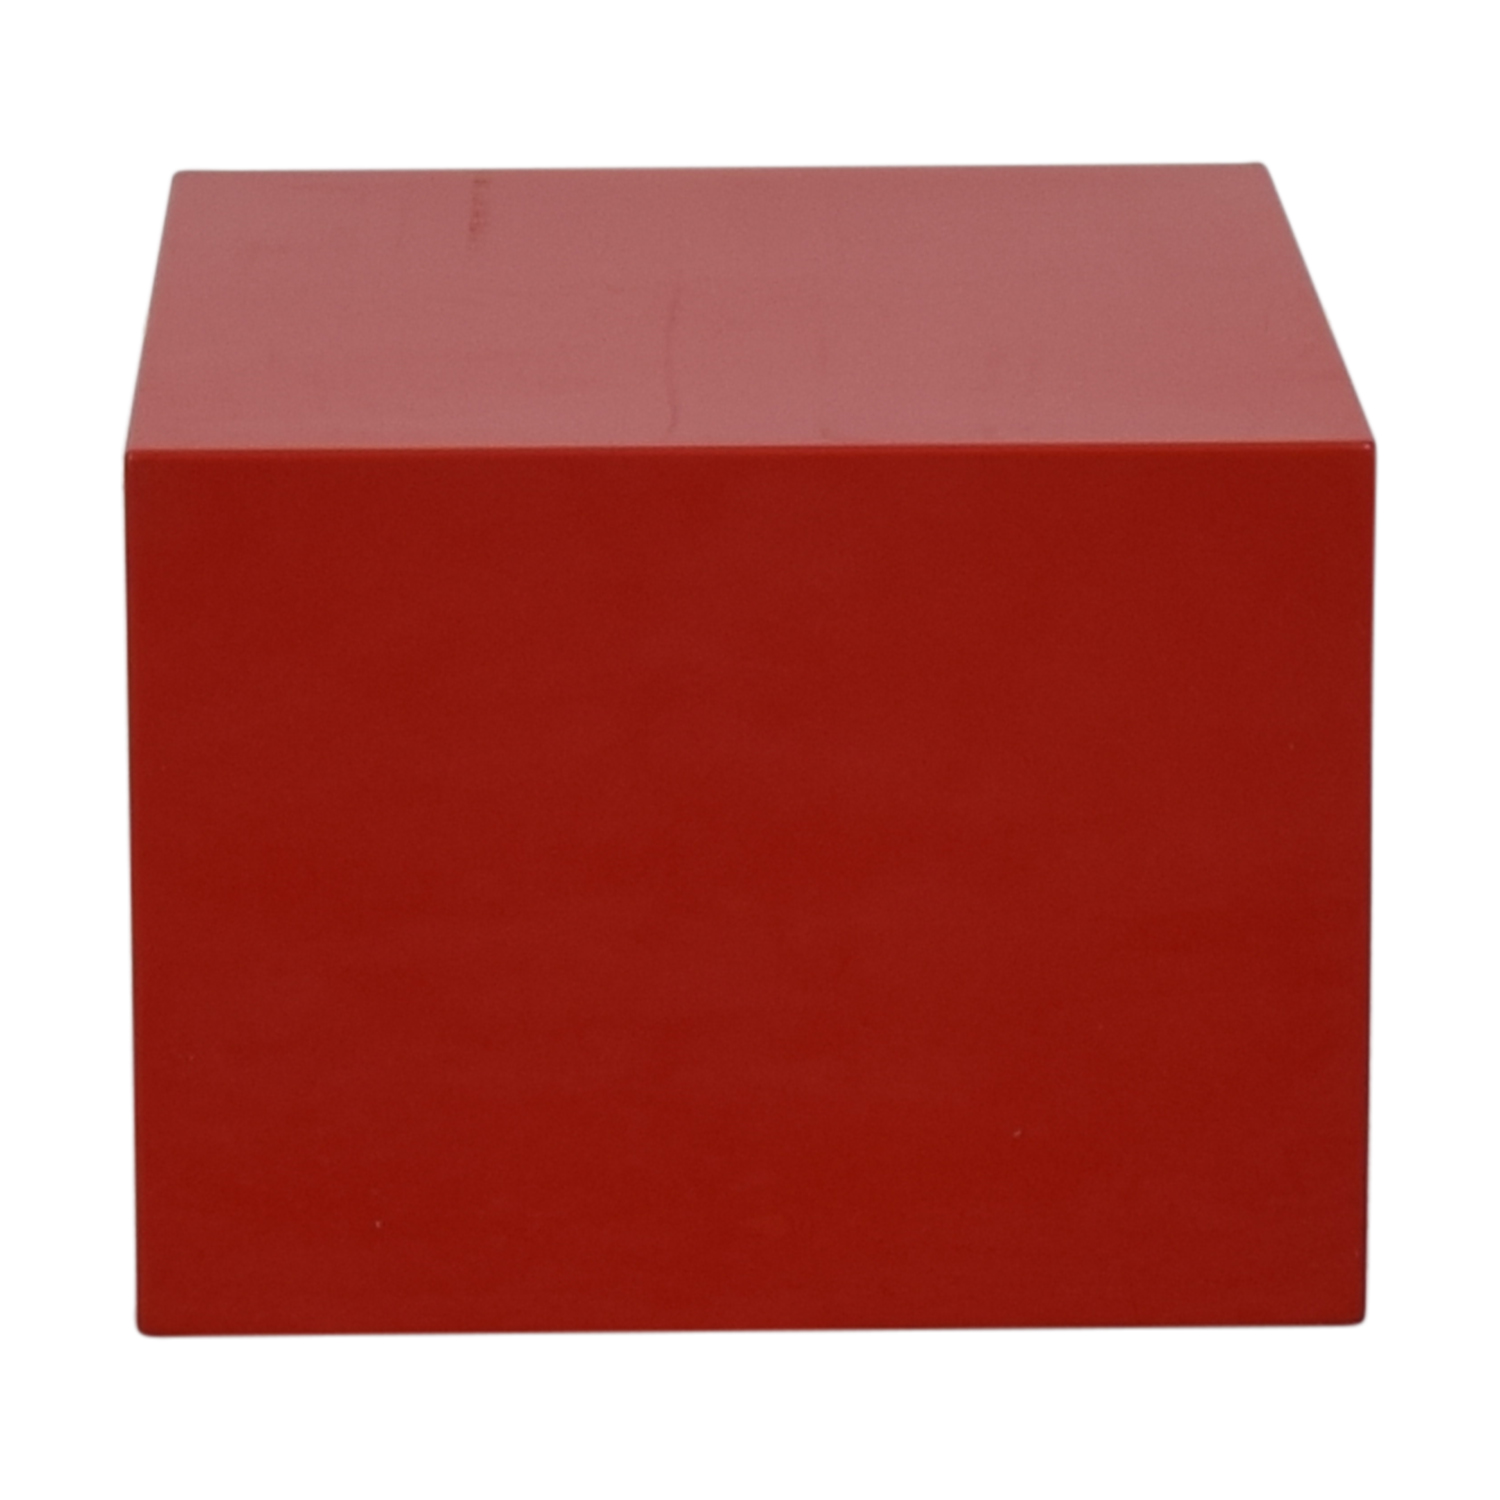 CB2 Cb2 City Slicker Red Side Table nyc